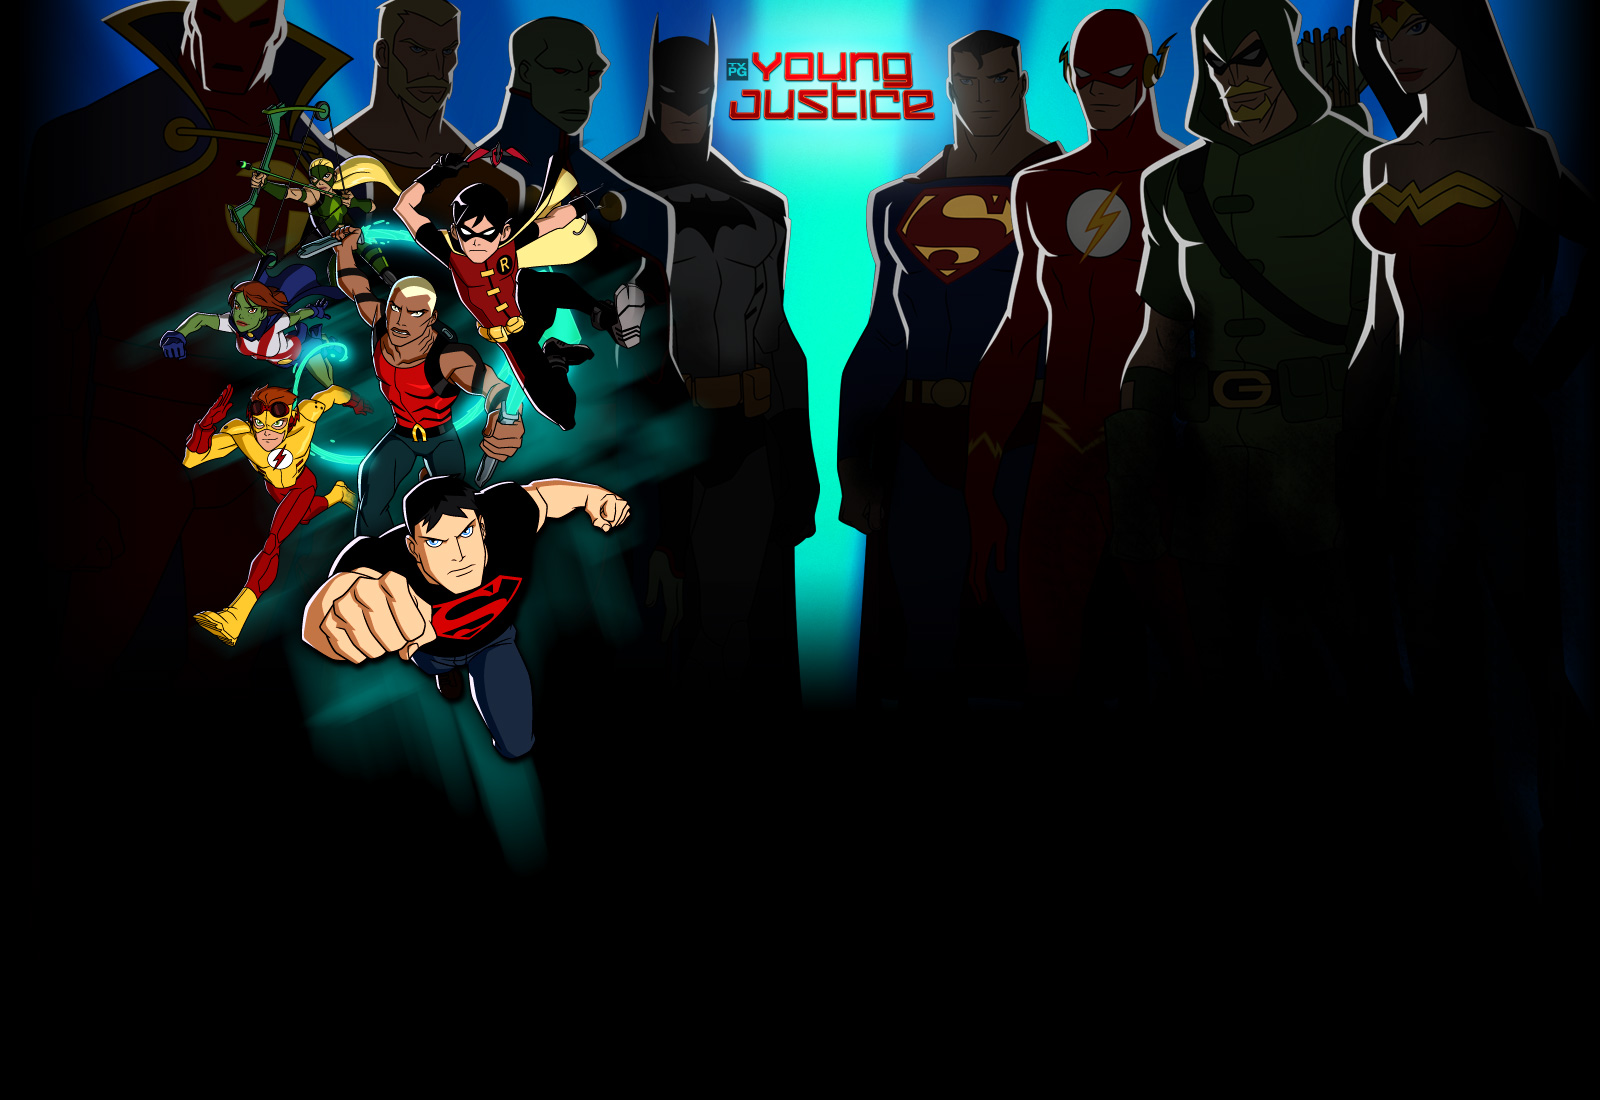 Young Justice animated series Please click on each image for a closer 1600x1100